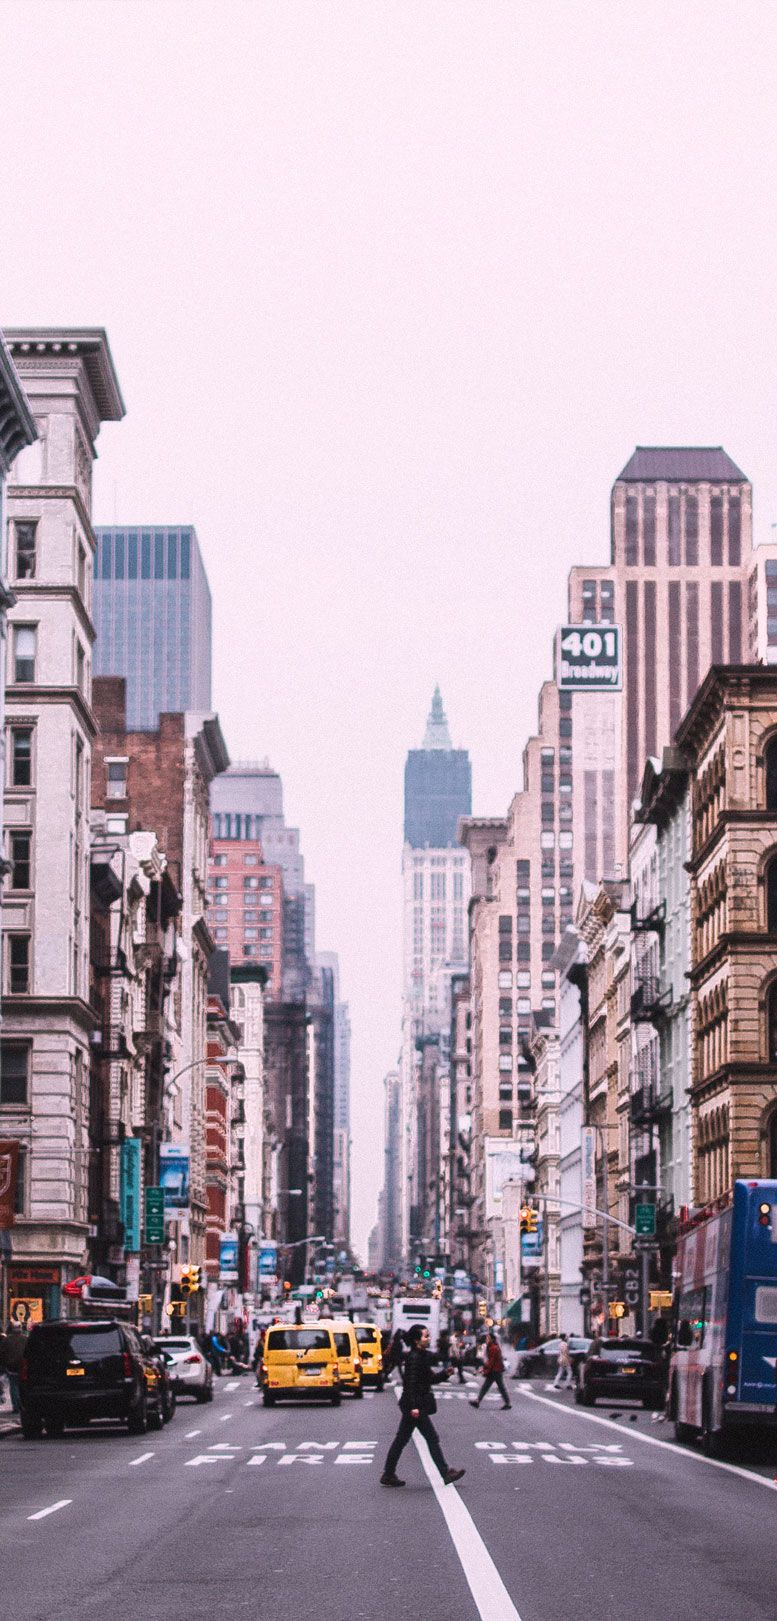 20 Awesome City iPhone wallpapers - Free iPhone wallpapers #wallpapers #iphone #background